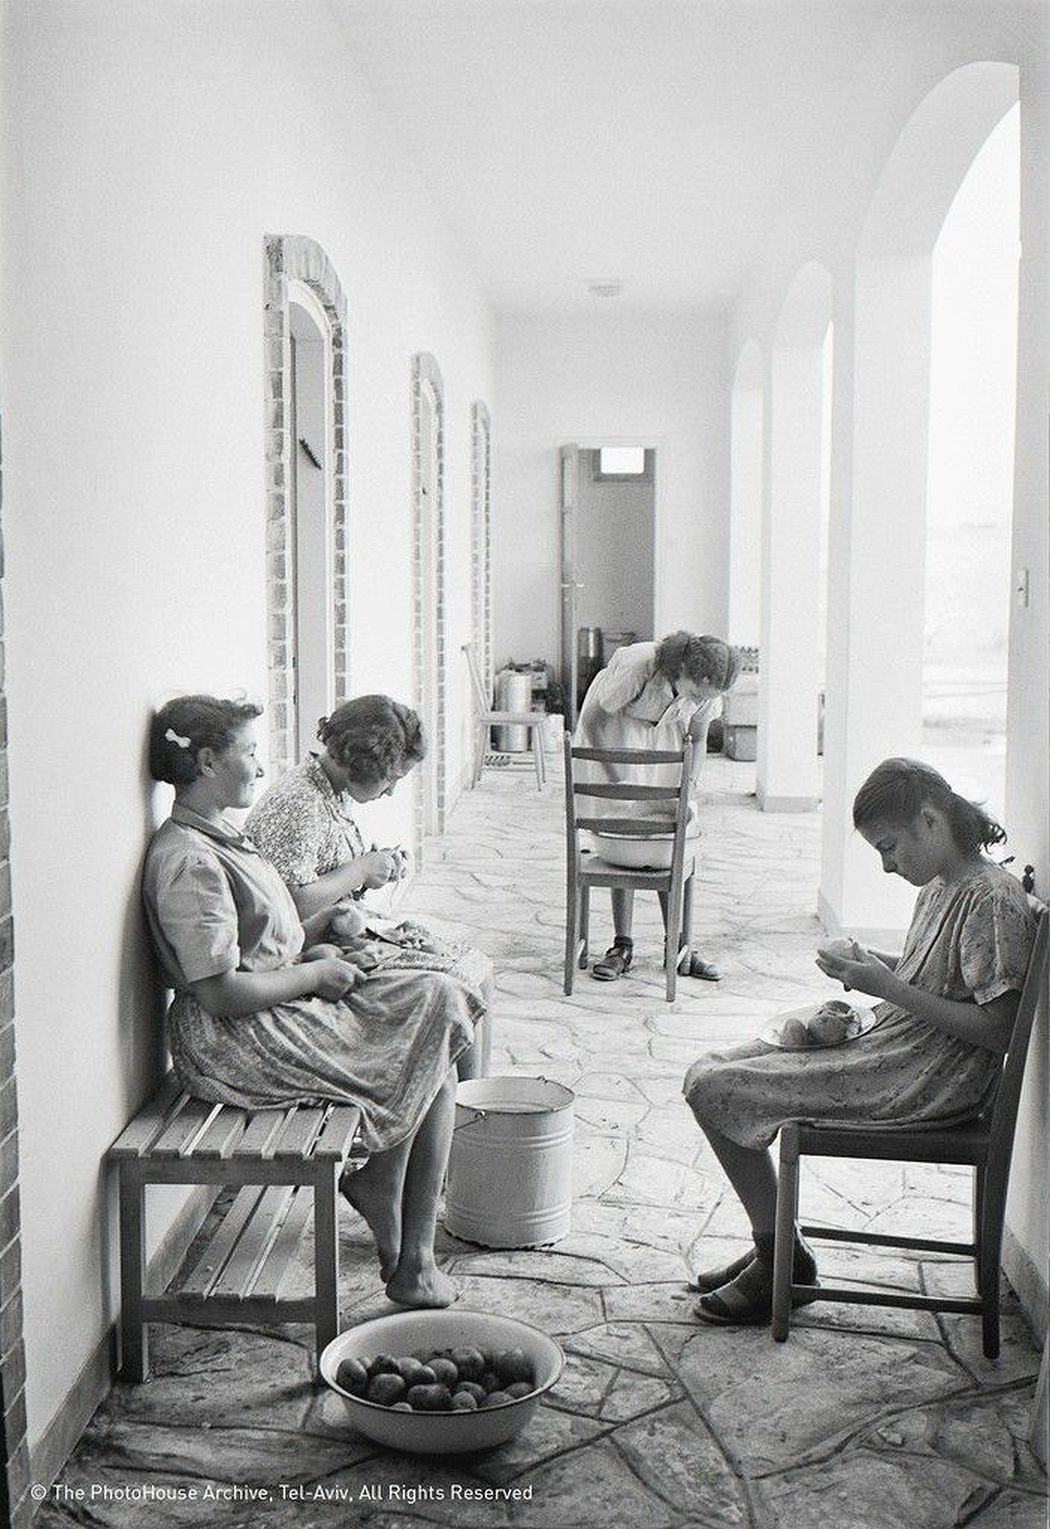 A Room in Kfar Batya for Child Survivors of the Holocaust, 1947